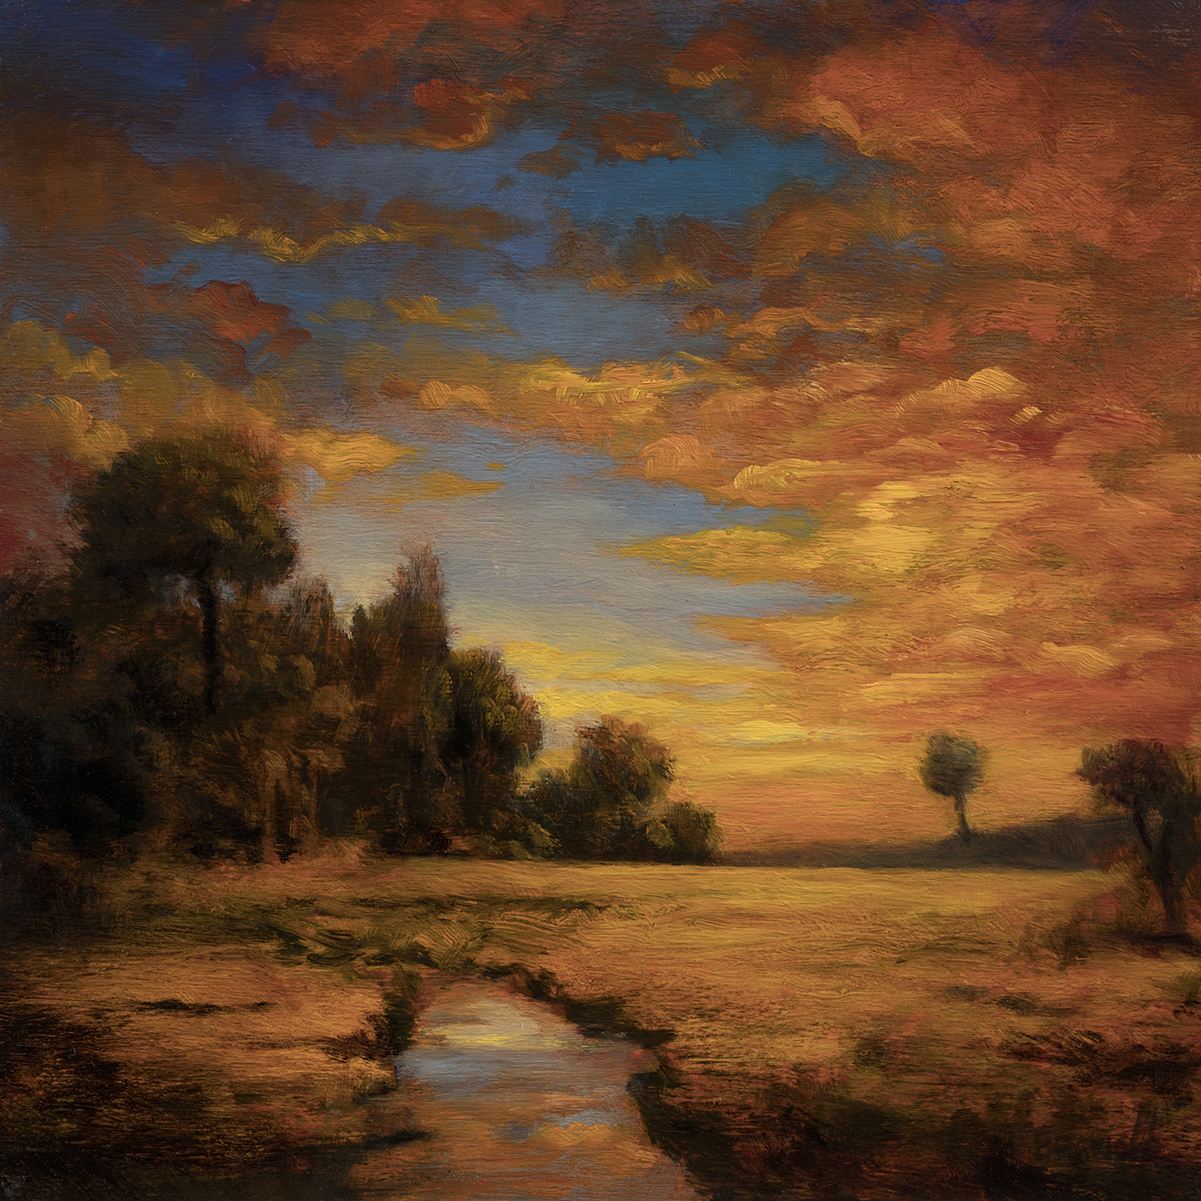 No Man's Land by M Francis McCarthy - 8x8 Oil on Wood Panel